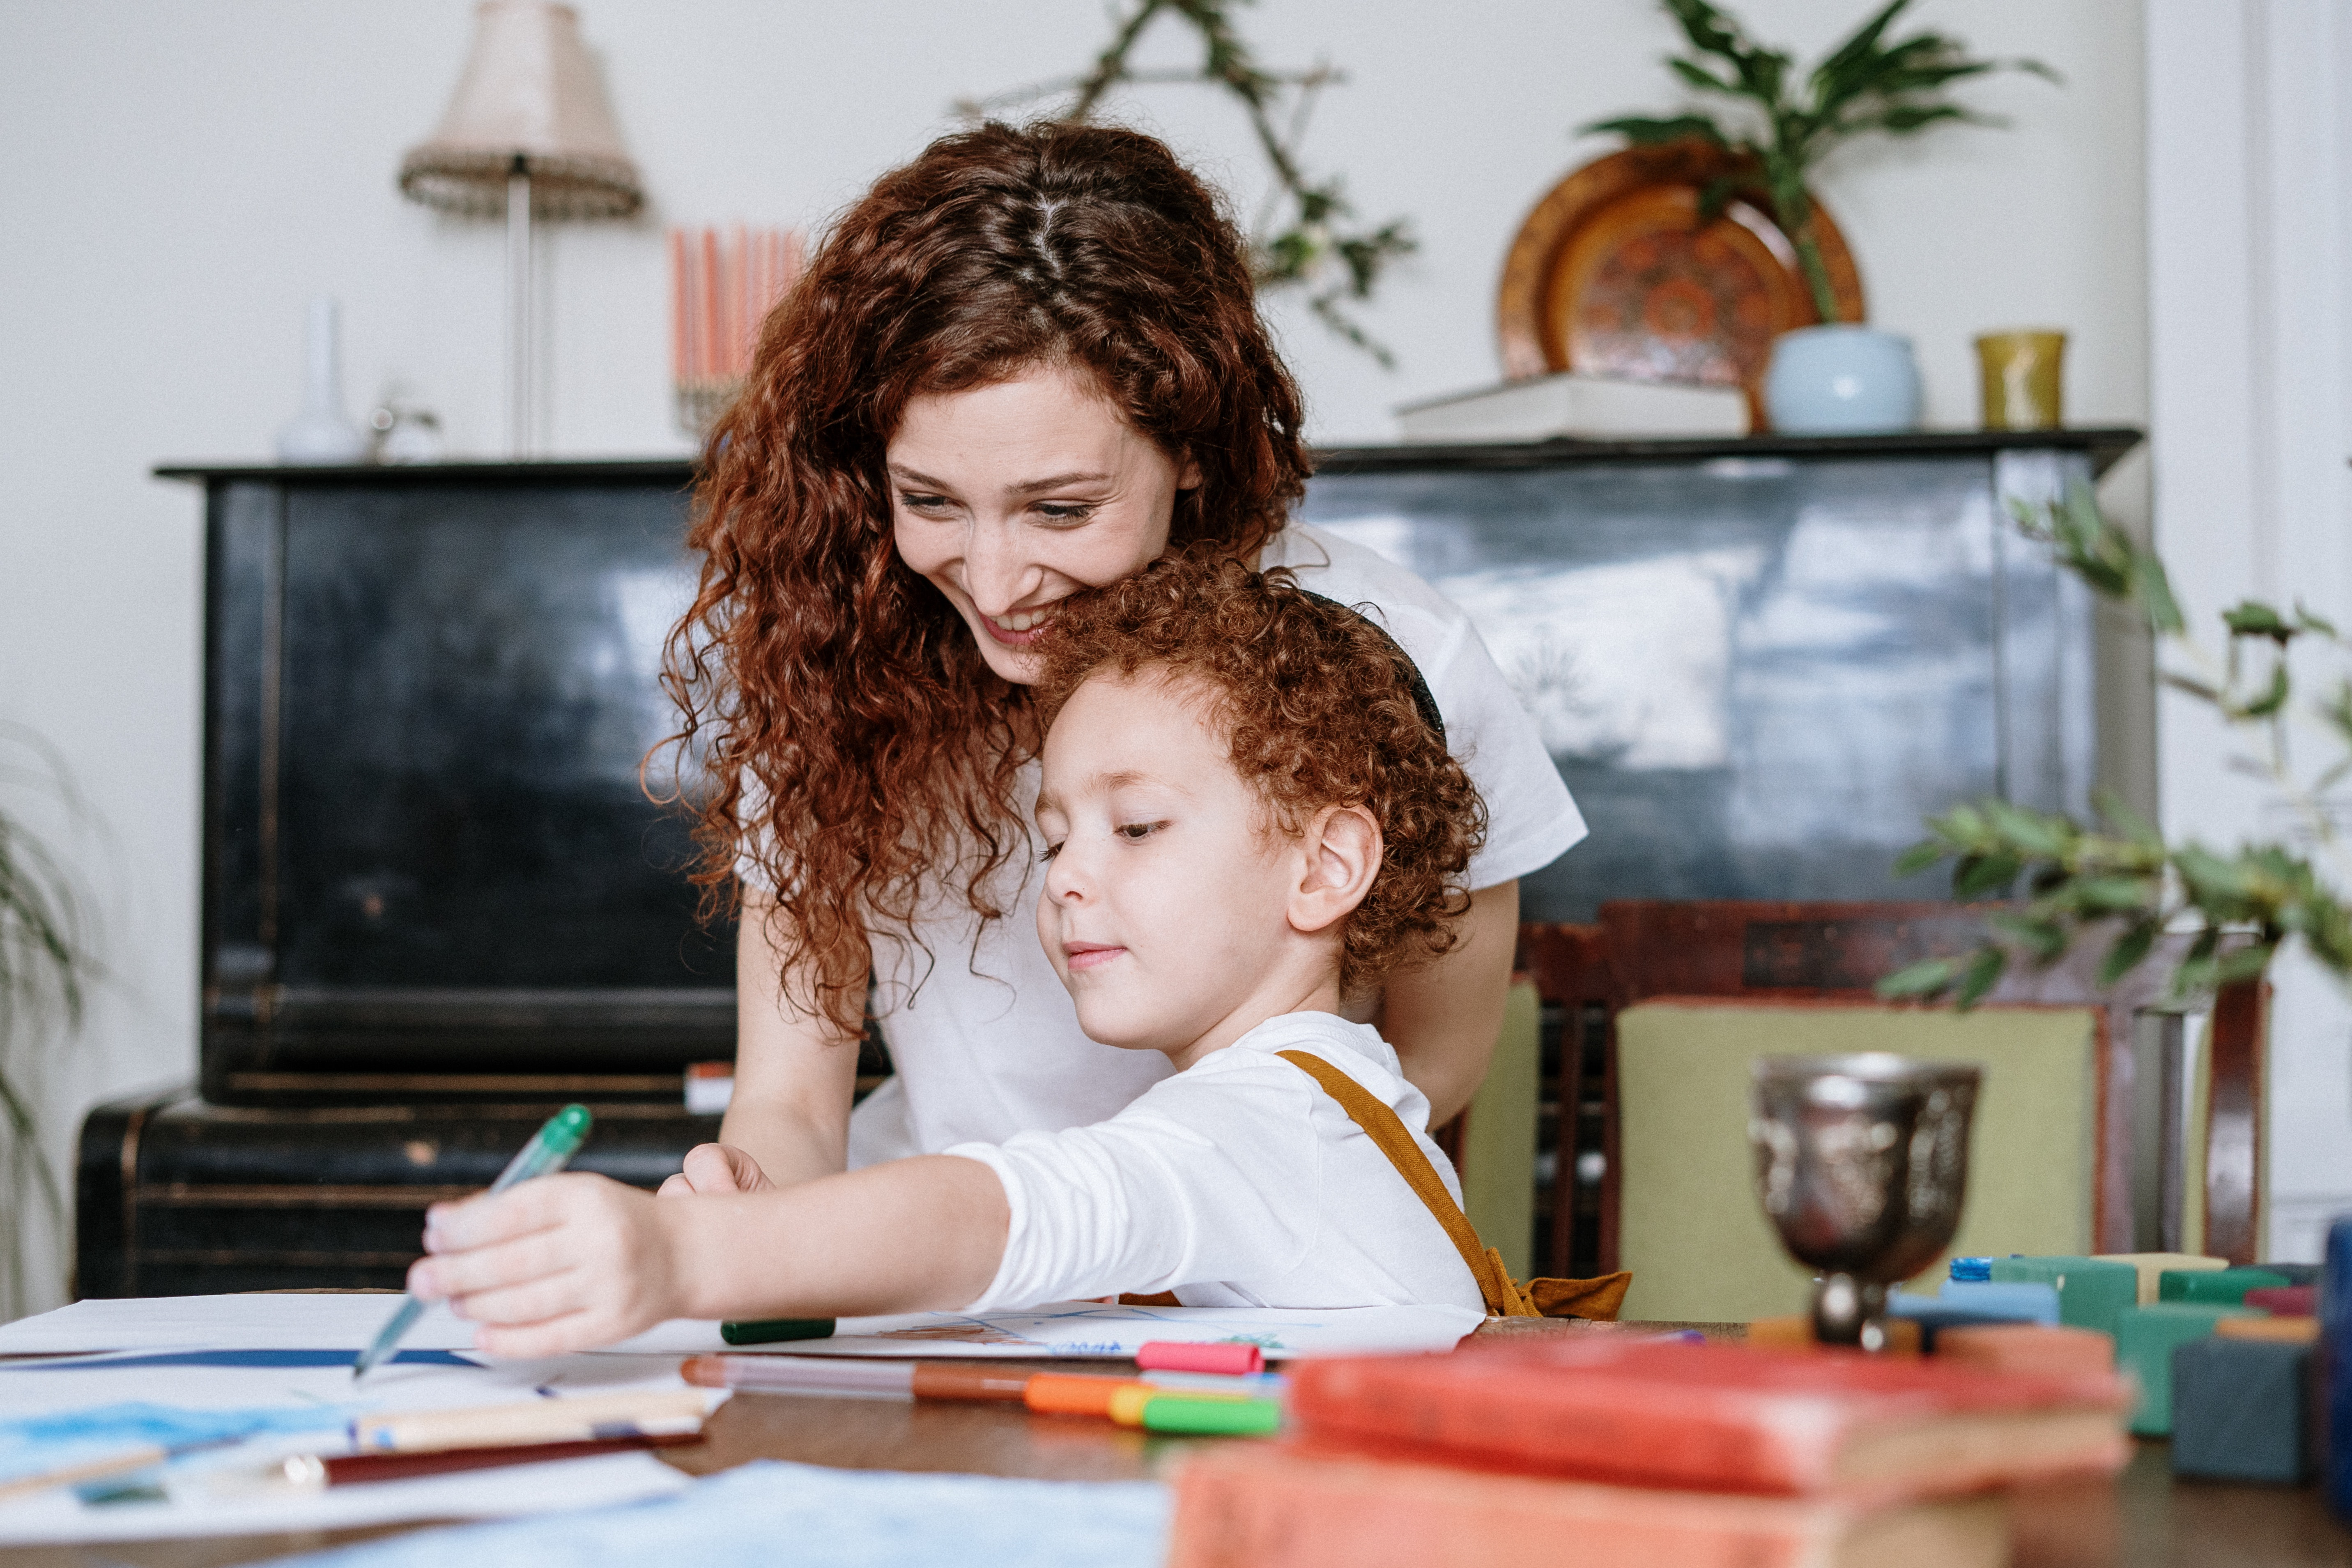 Researches have shown that stubborn, strong-willed children who defy parent authority grow up to become top earners and entrepreneurs because they choose to think ou of the box. It's a gift to be blessed with a strong-willed child #parenting #theerailivedin